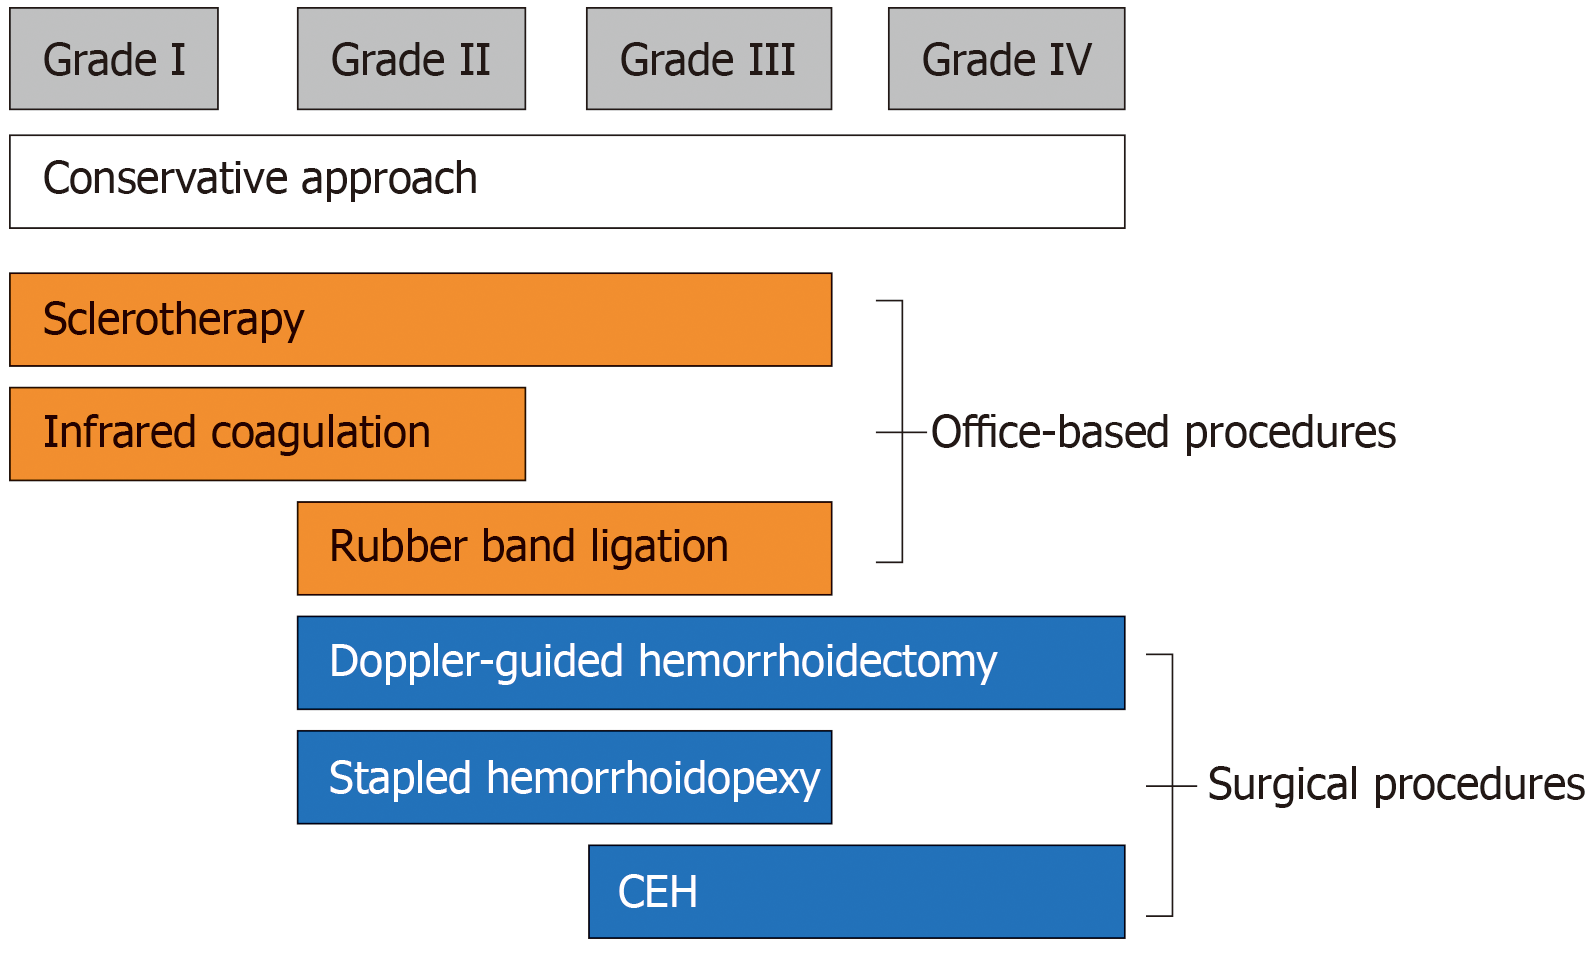 Treatment Of Hemorrhoids A Survey Of Surgical Practice In Australia And New Zealand